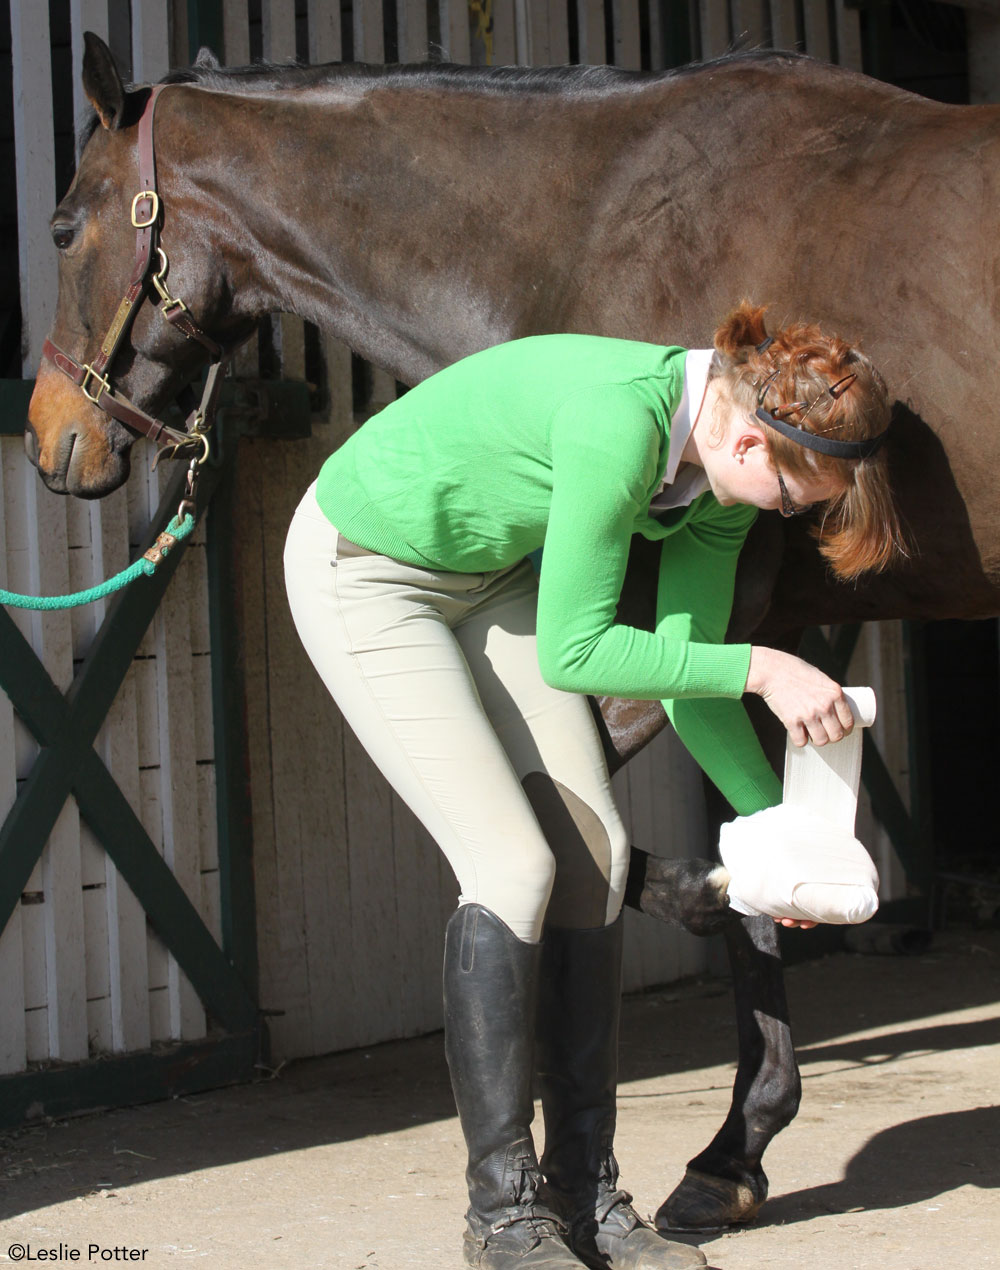 Wrapping a horse's hoof